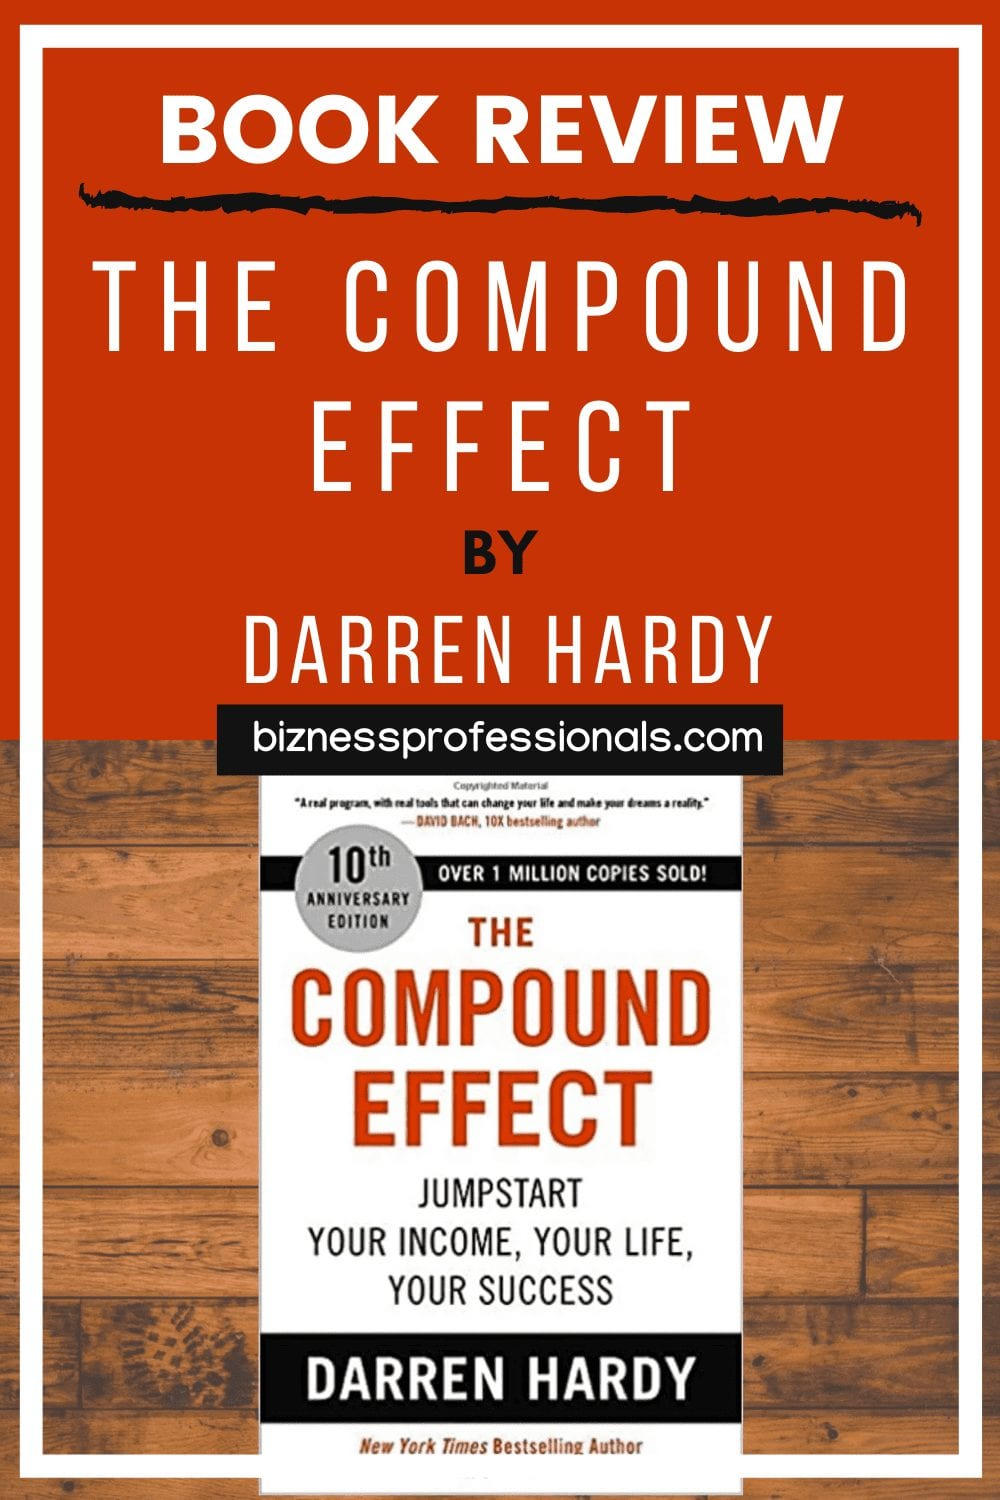 the compound effect book review and summary